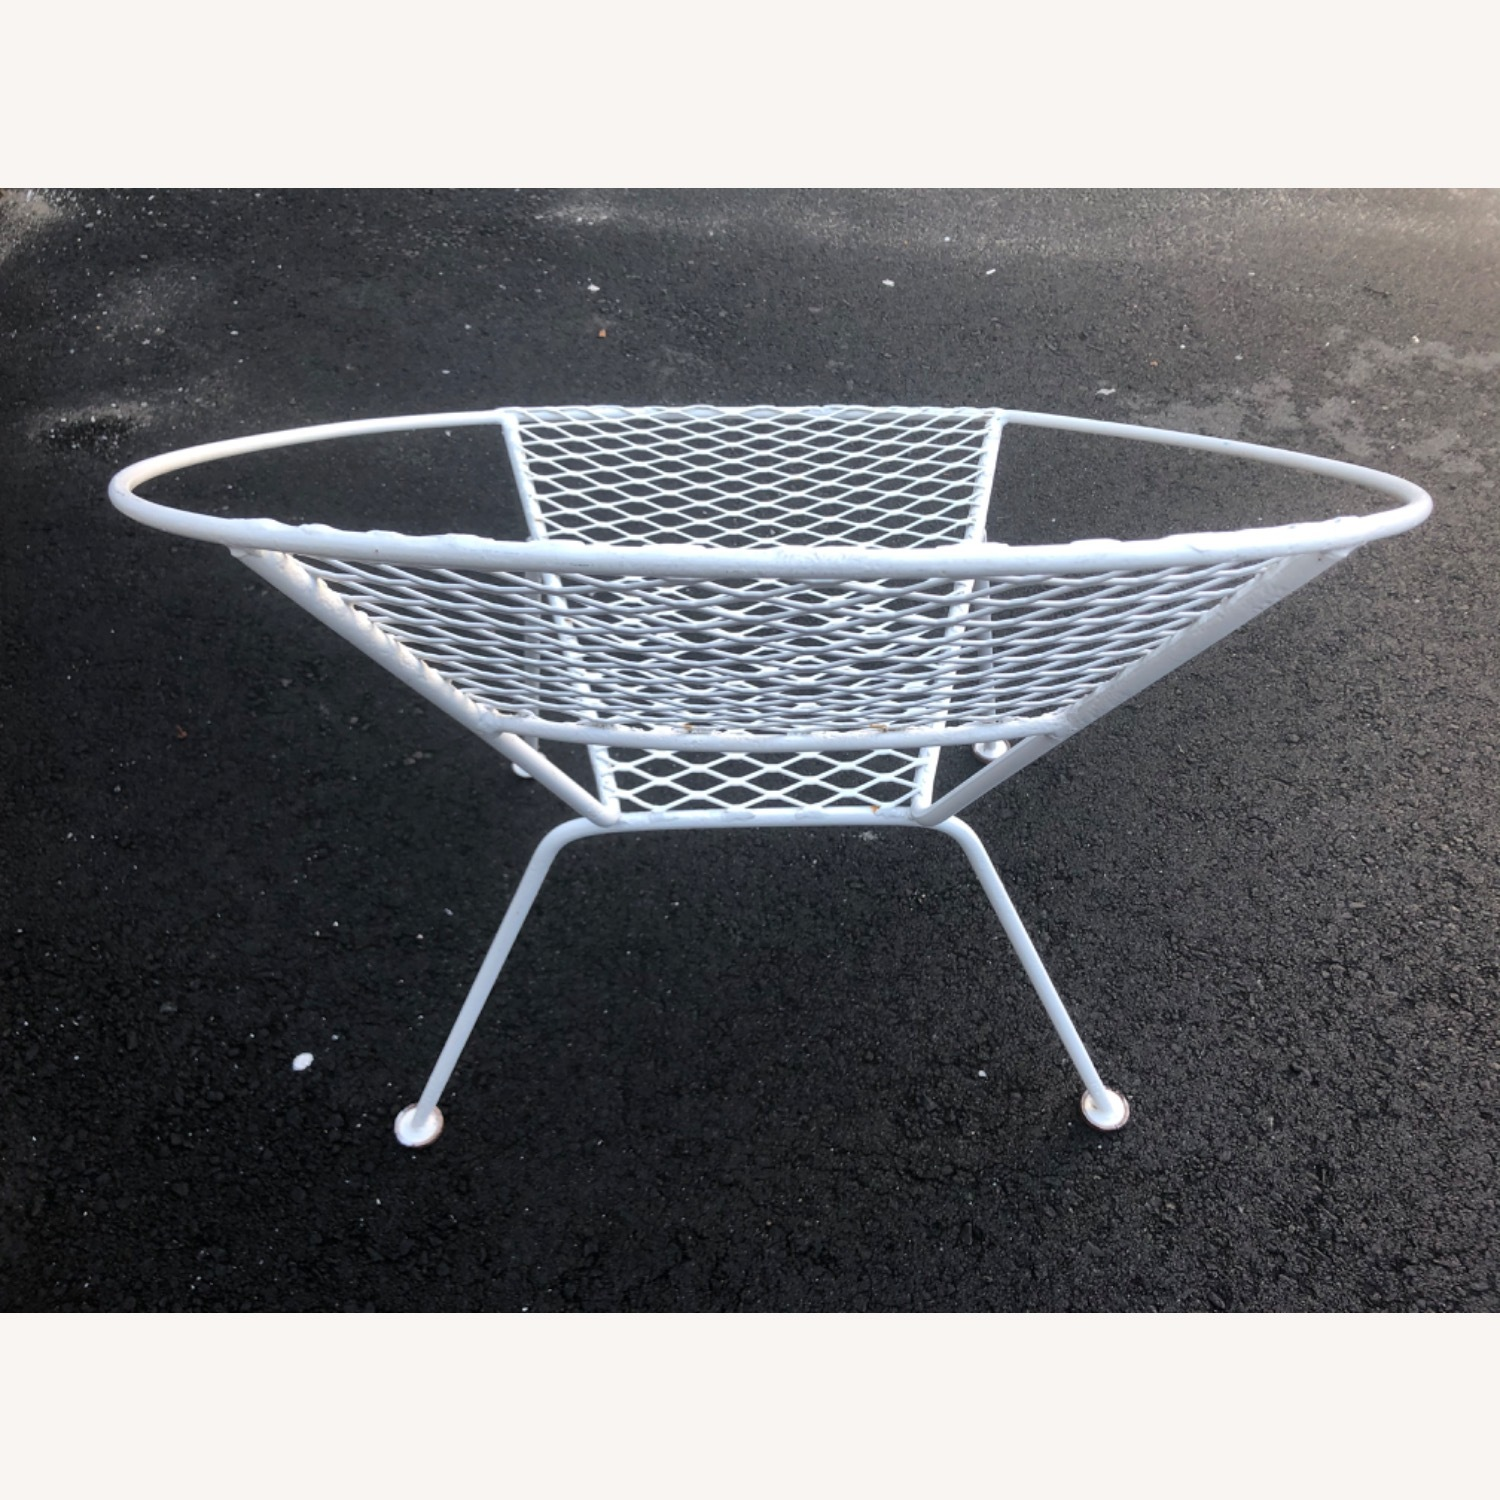 Knoll Outdoor Chairs Bertoia - image-3